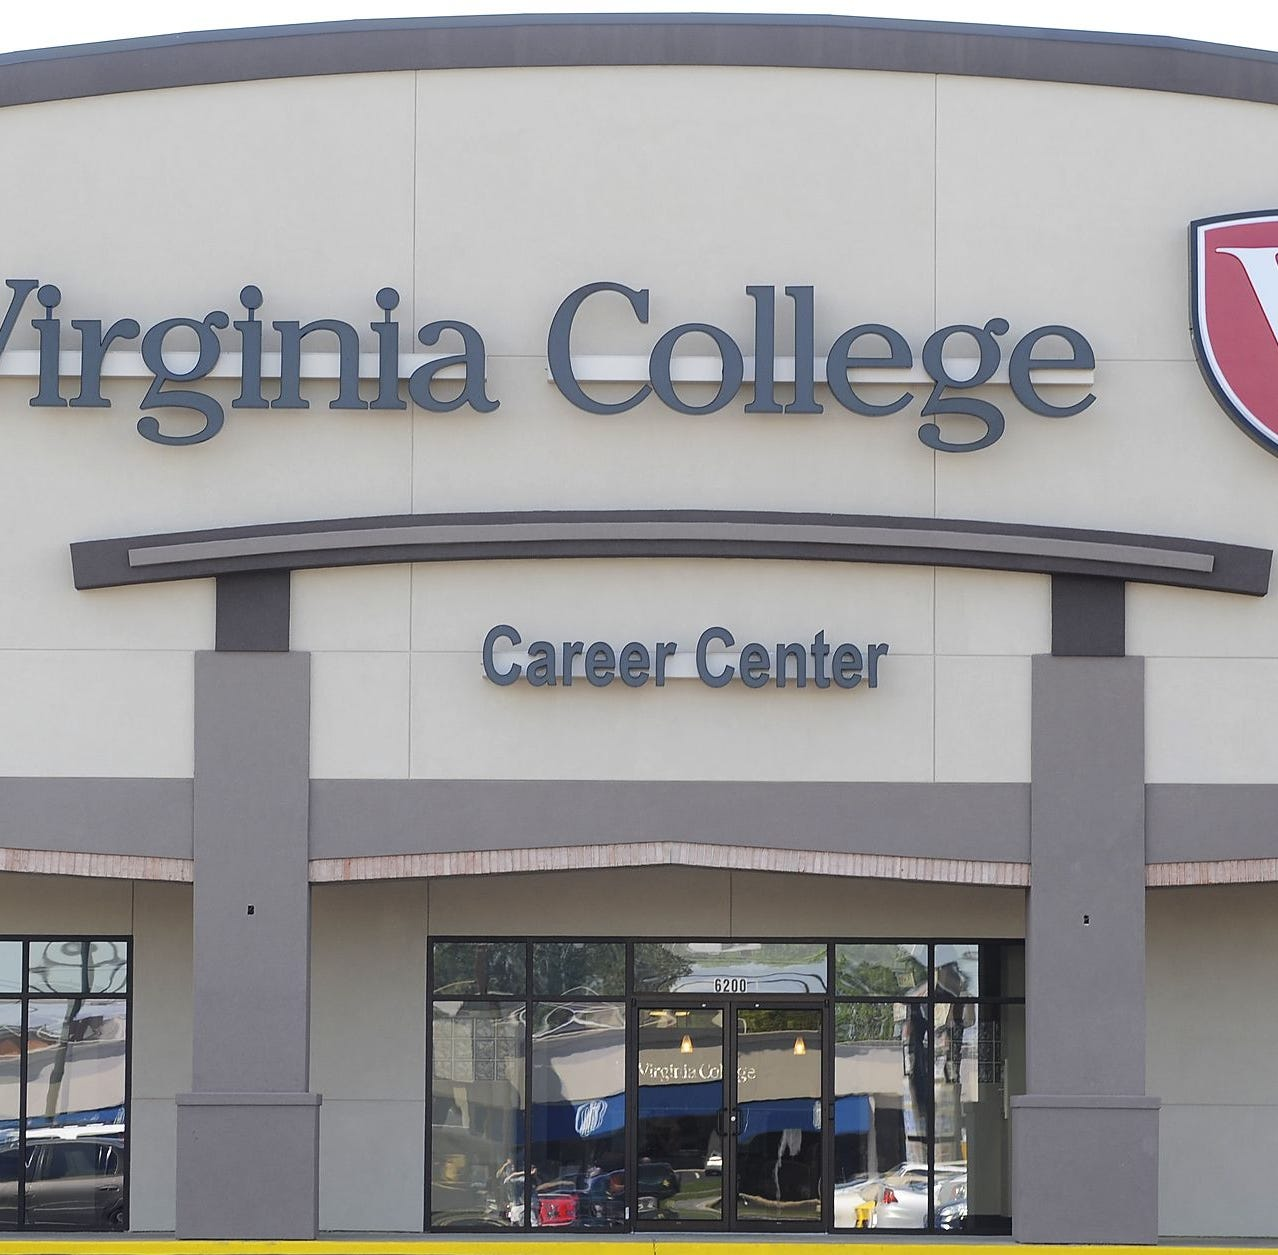 Two Montgomery schools try to attract students left in lurch by Virginia College's closing